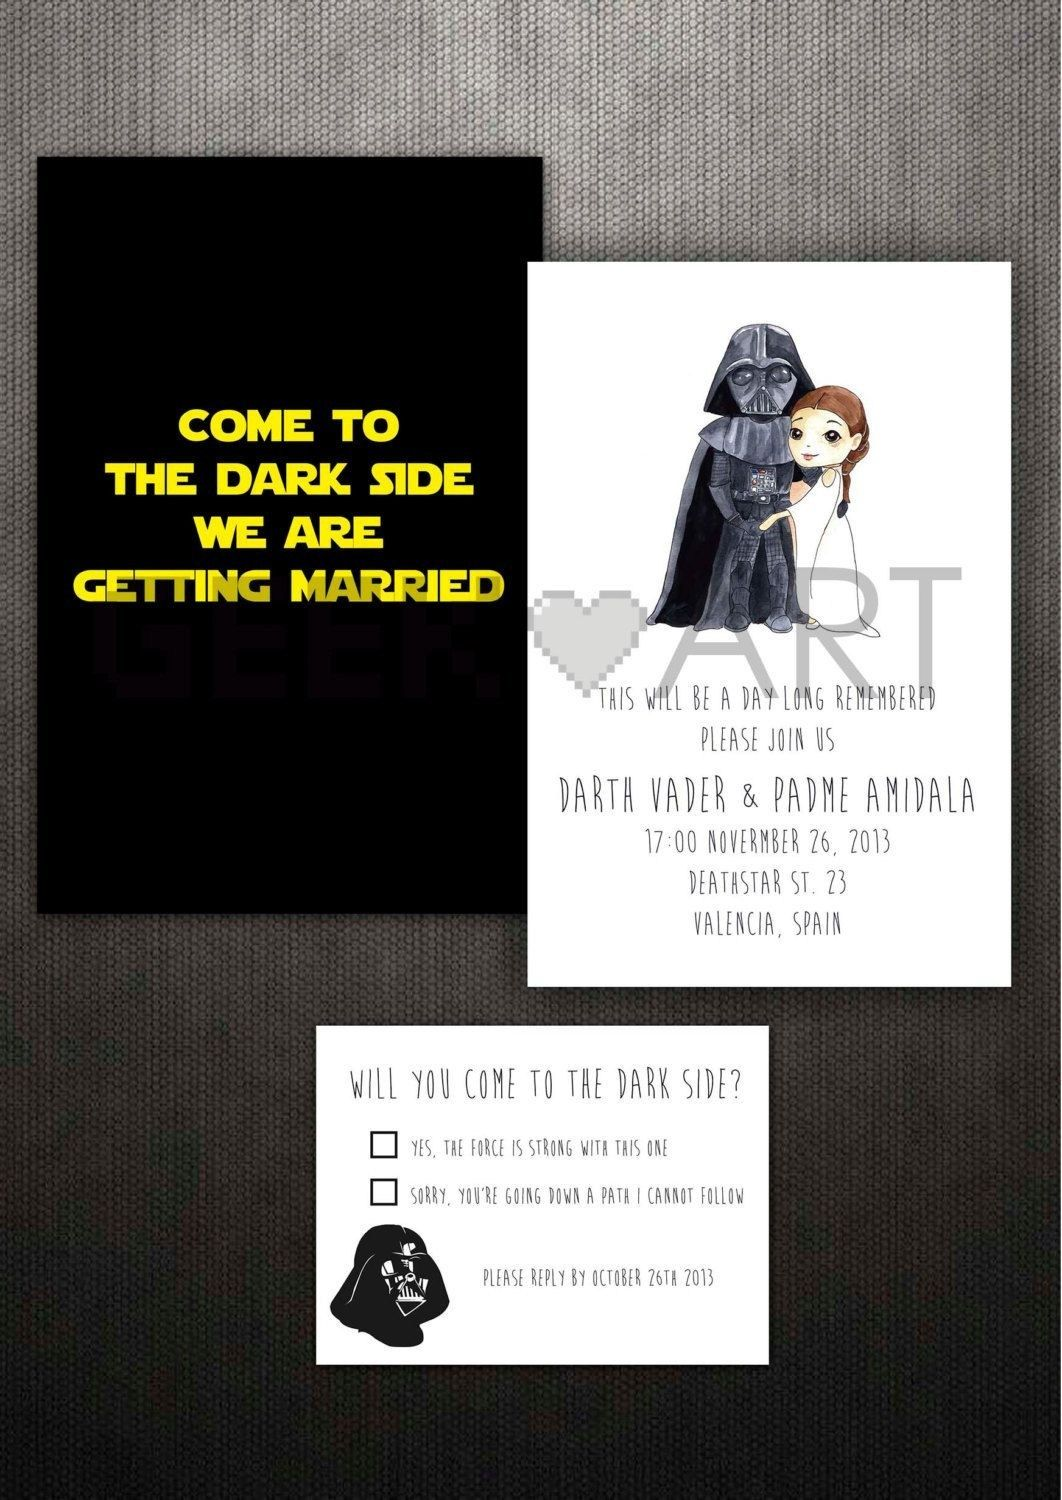 30 Inspiration Image Of Star Wars Wedding Invitations Regiosfera Com Star Wars Wedding Geek Wedding Star Wars Invitations